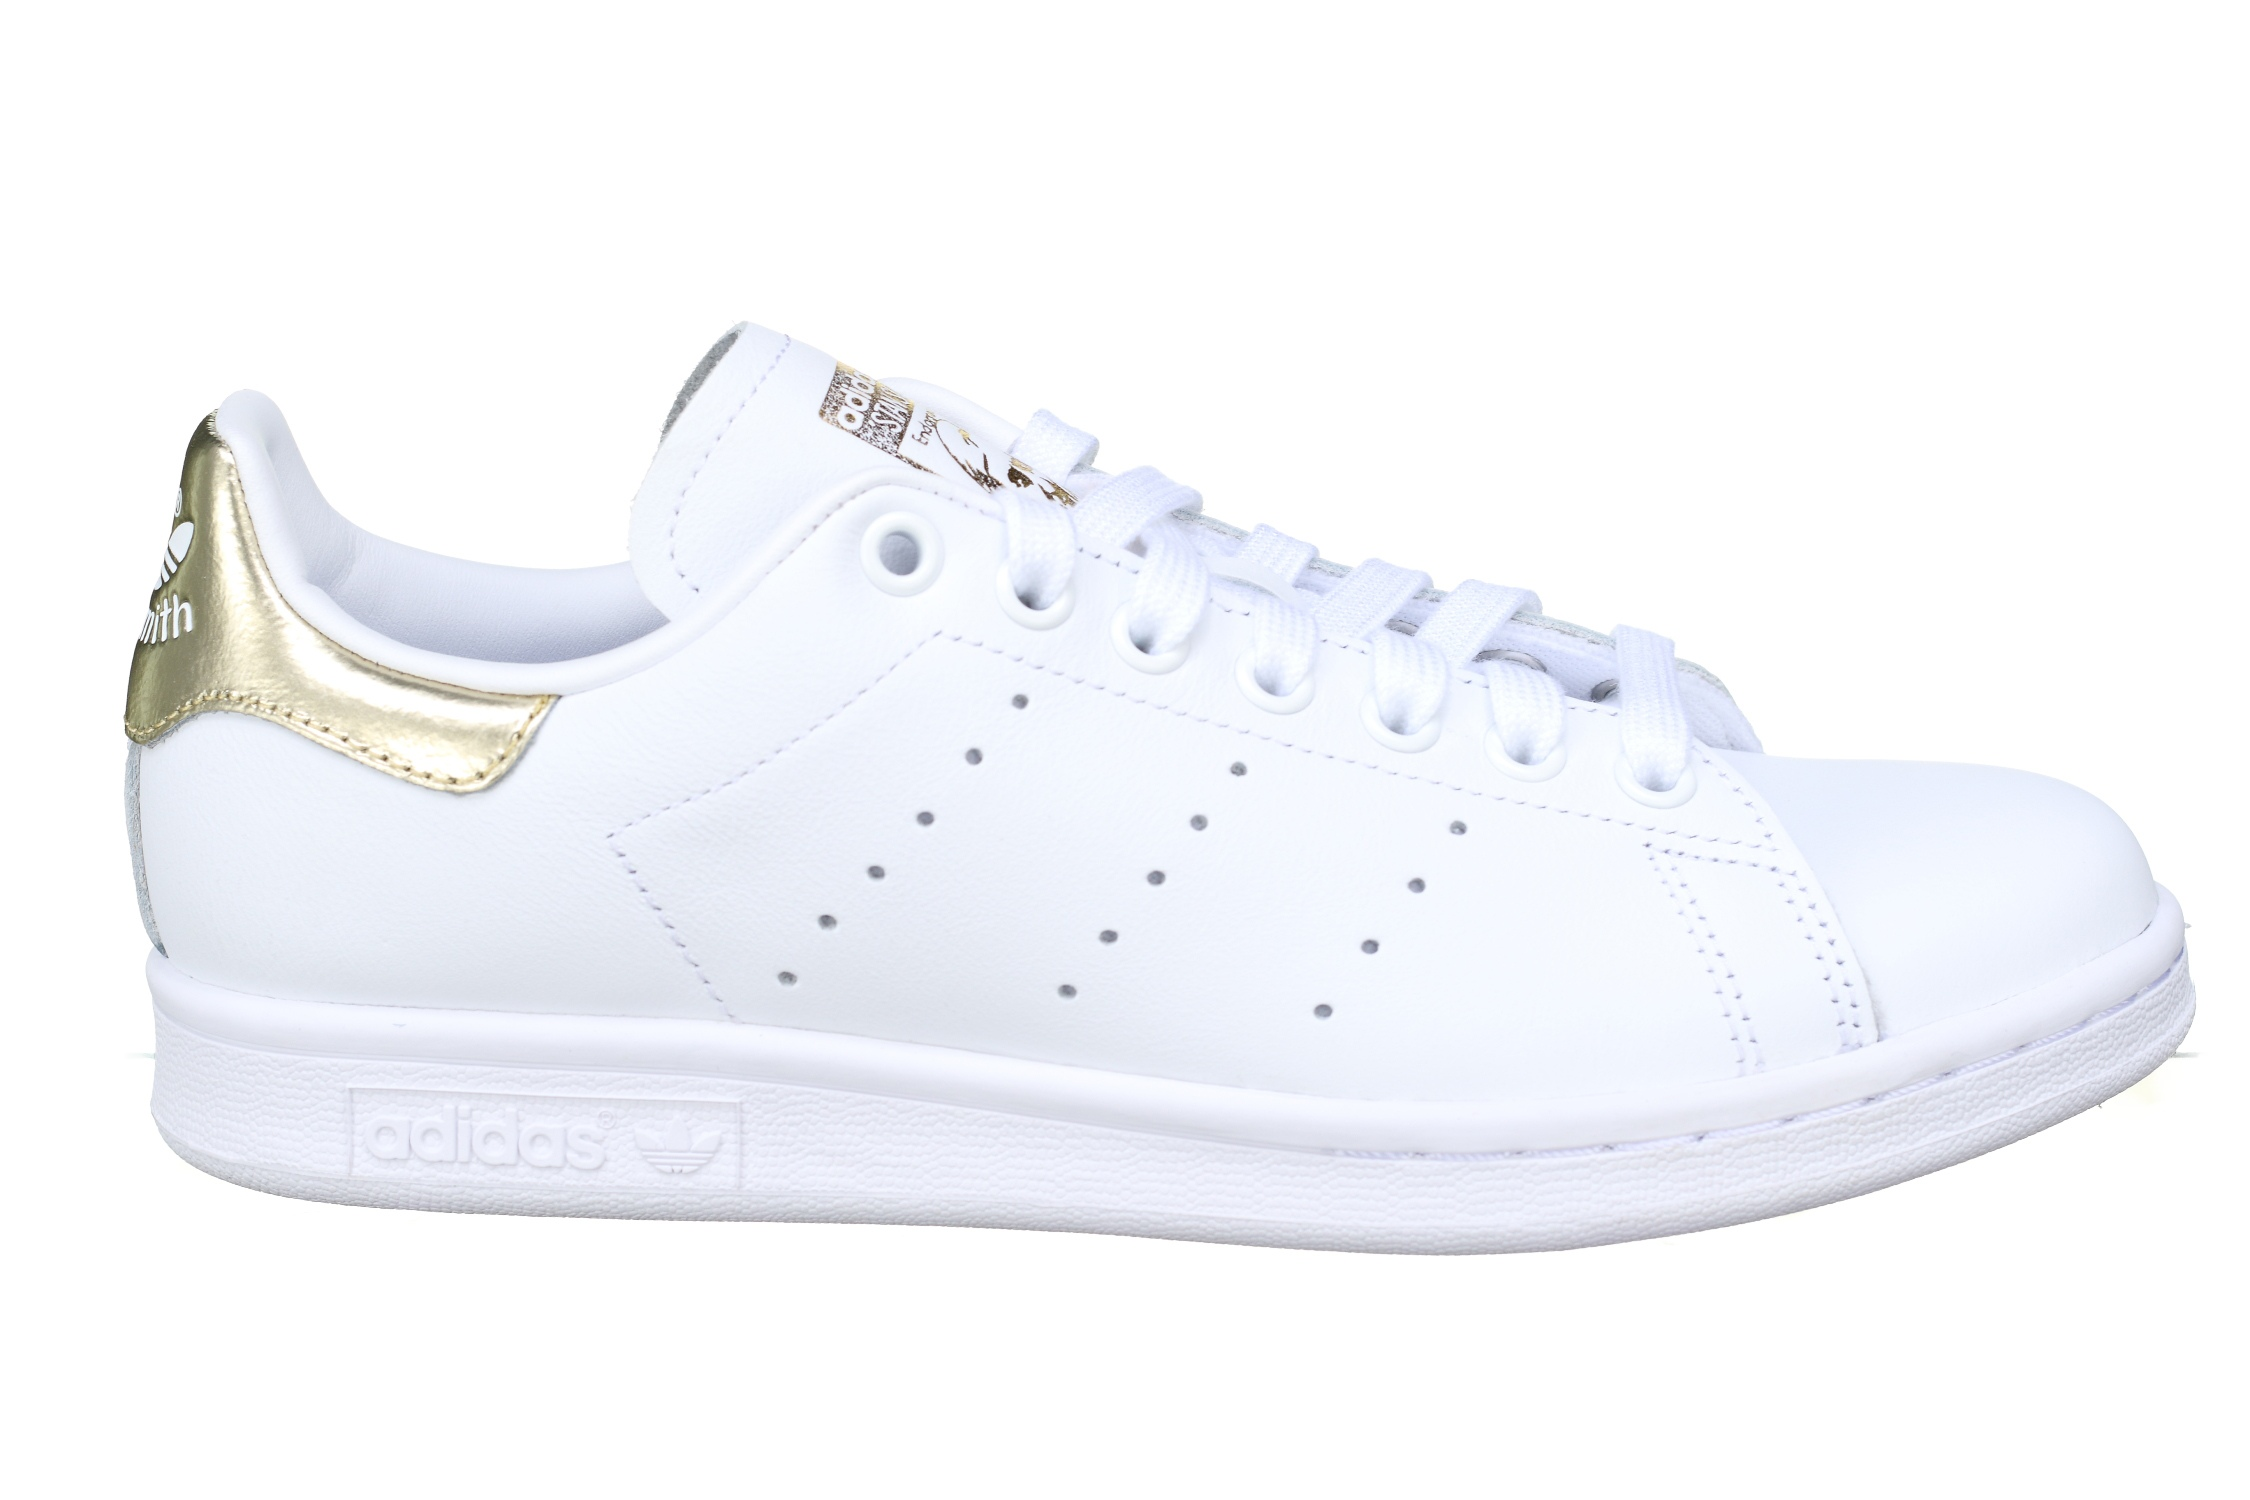 Smith femme Basket Adidas Stan Leader W Ee8836 Doree Blanc